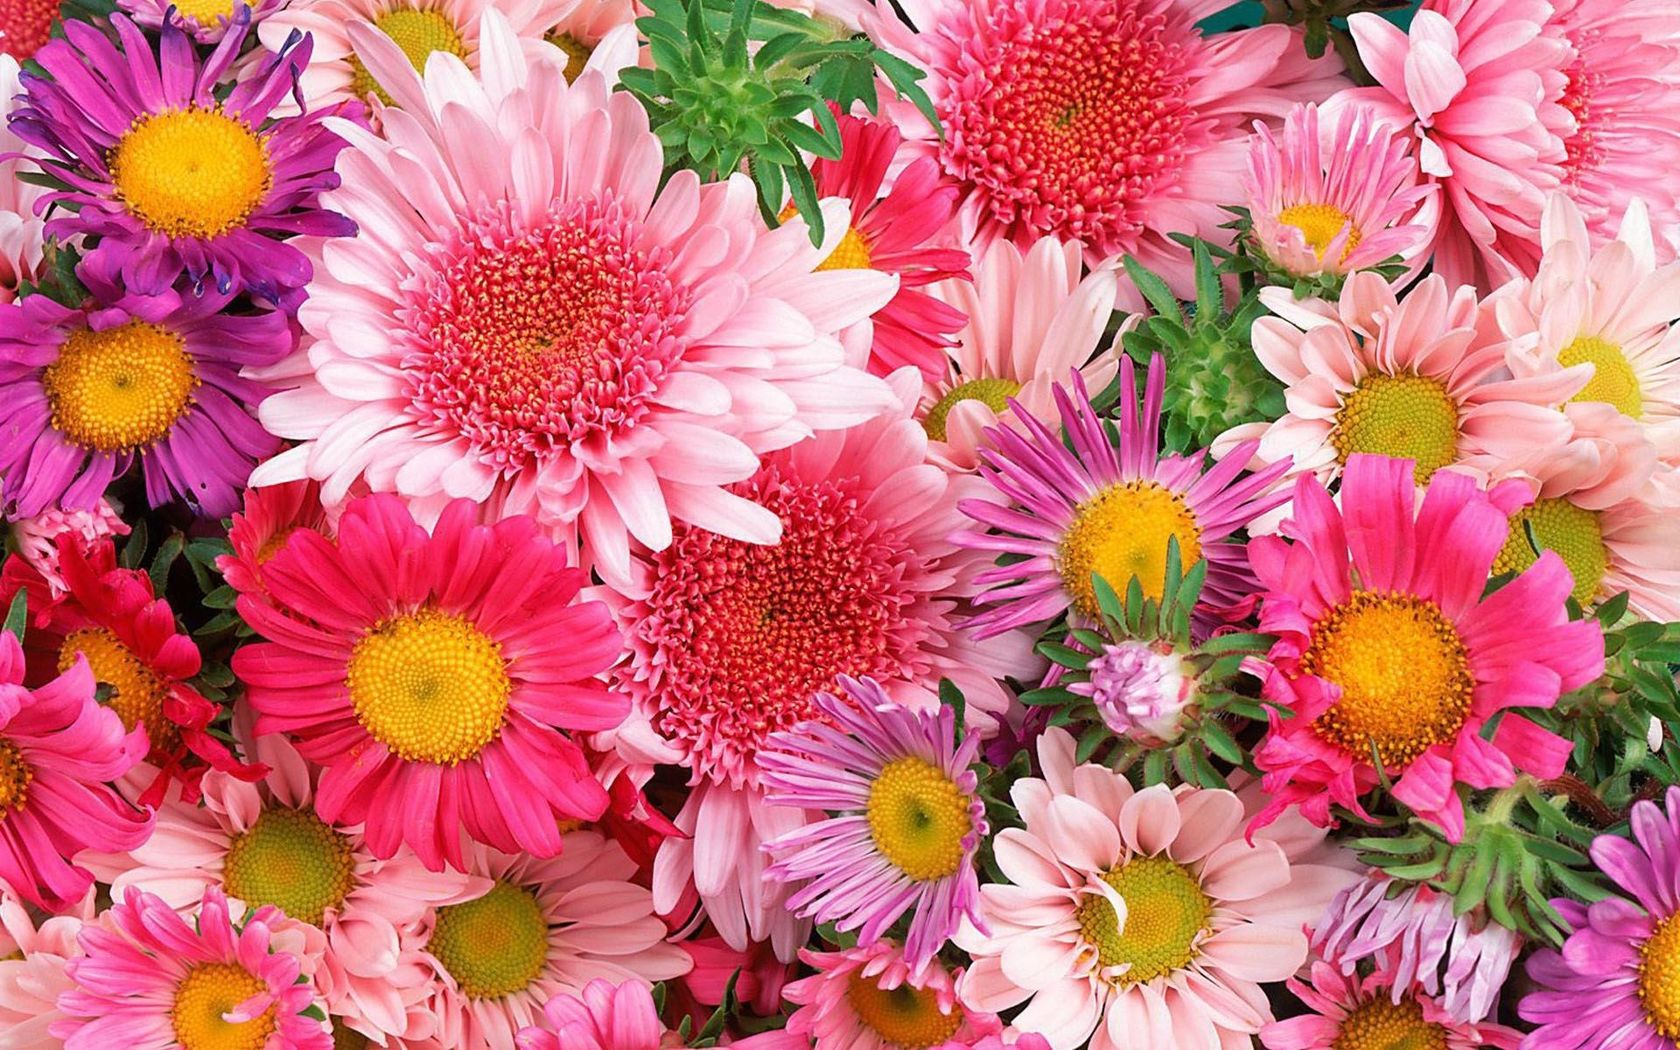 Colorful mums and daisies